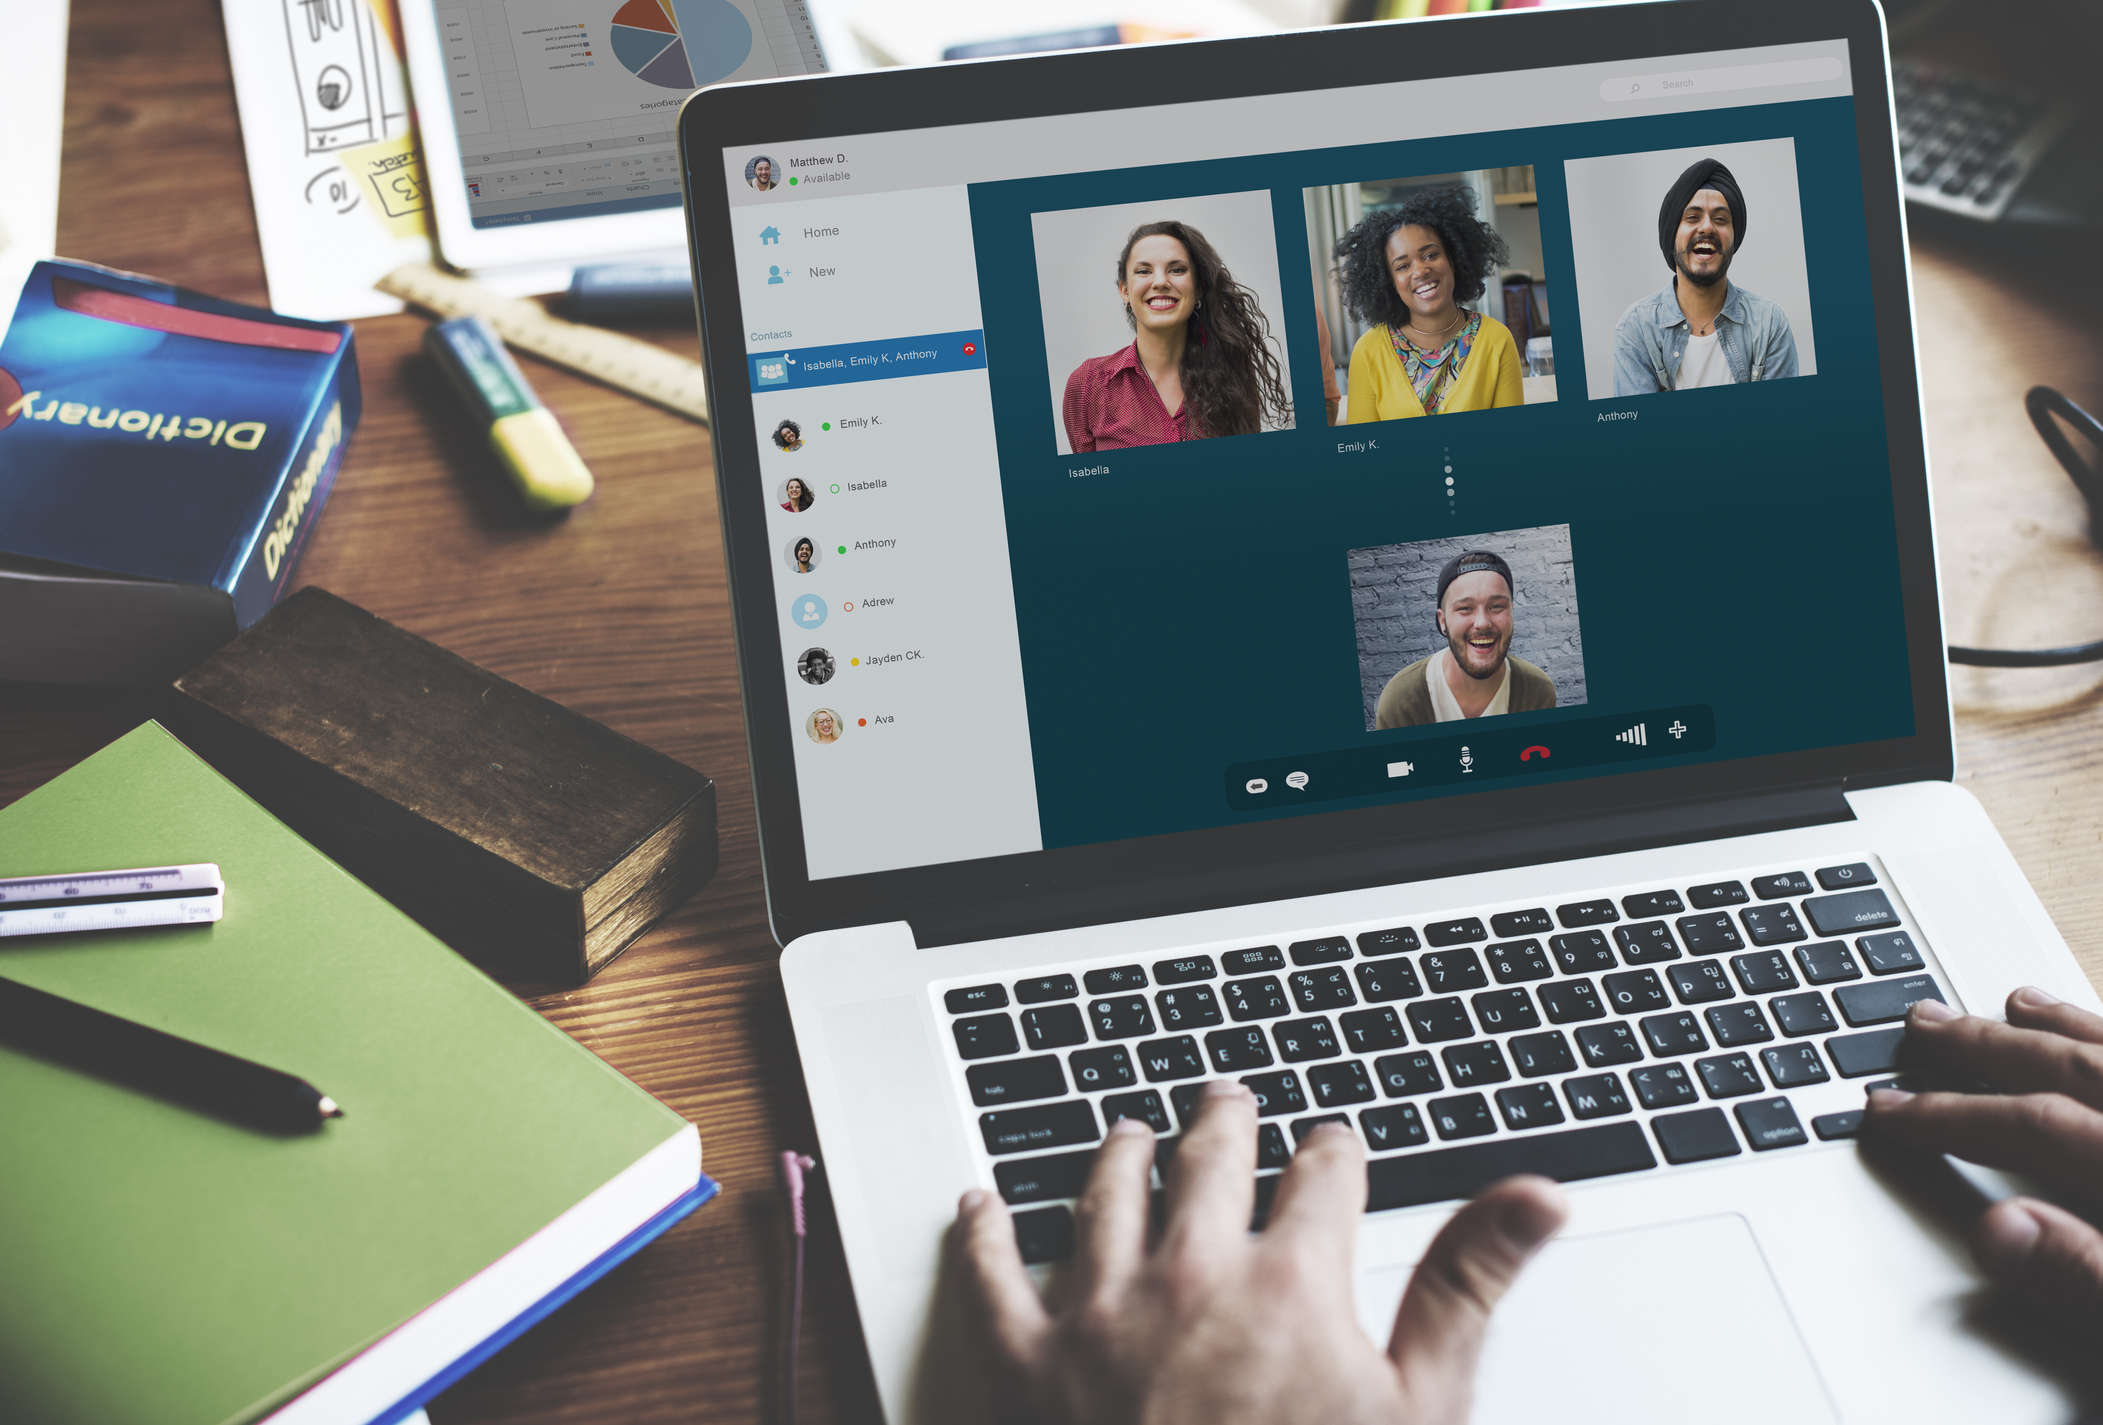 How to Have Effective Video Meetings